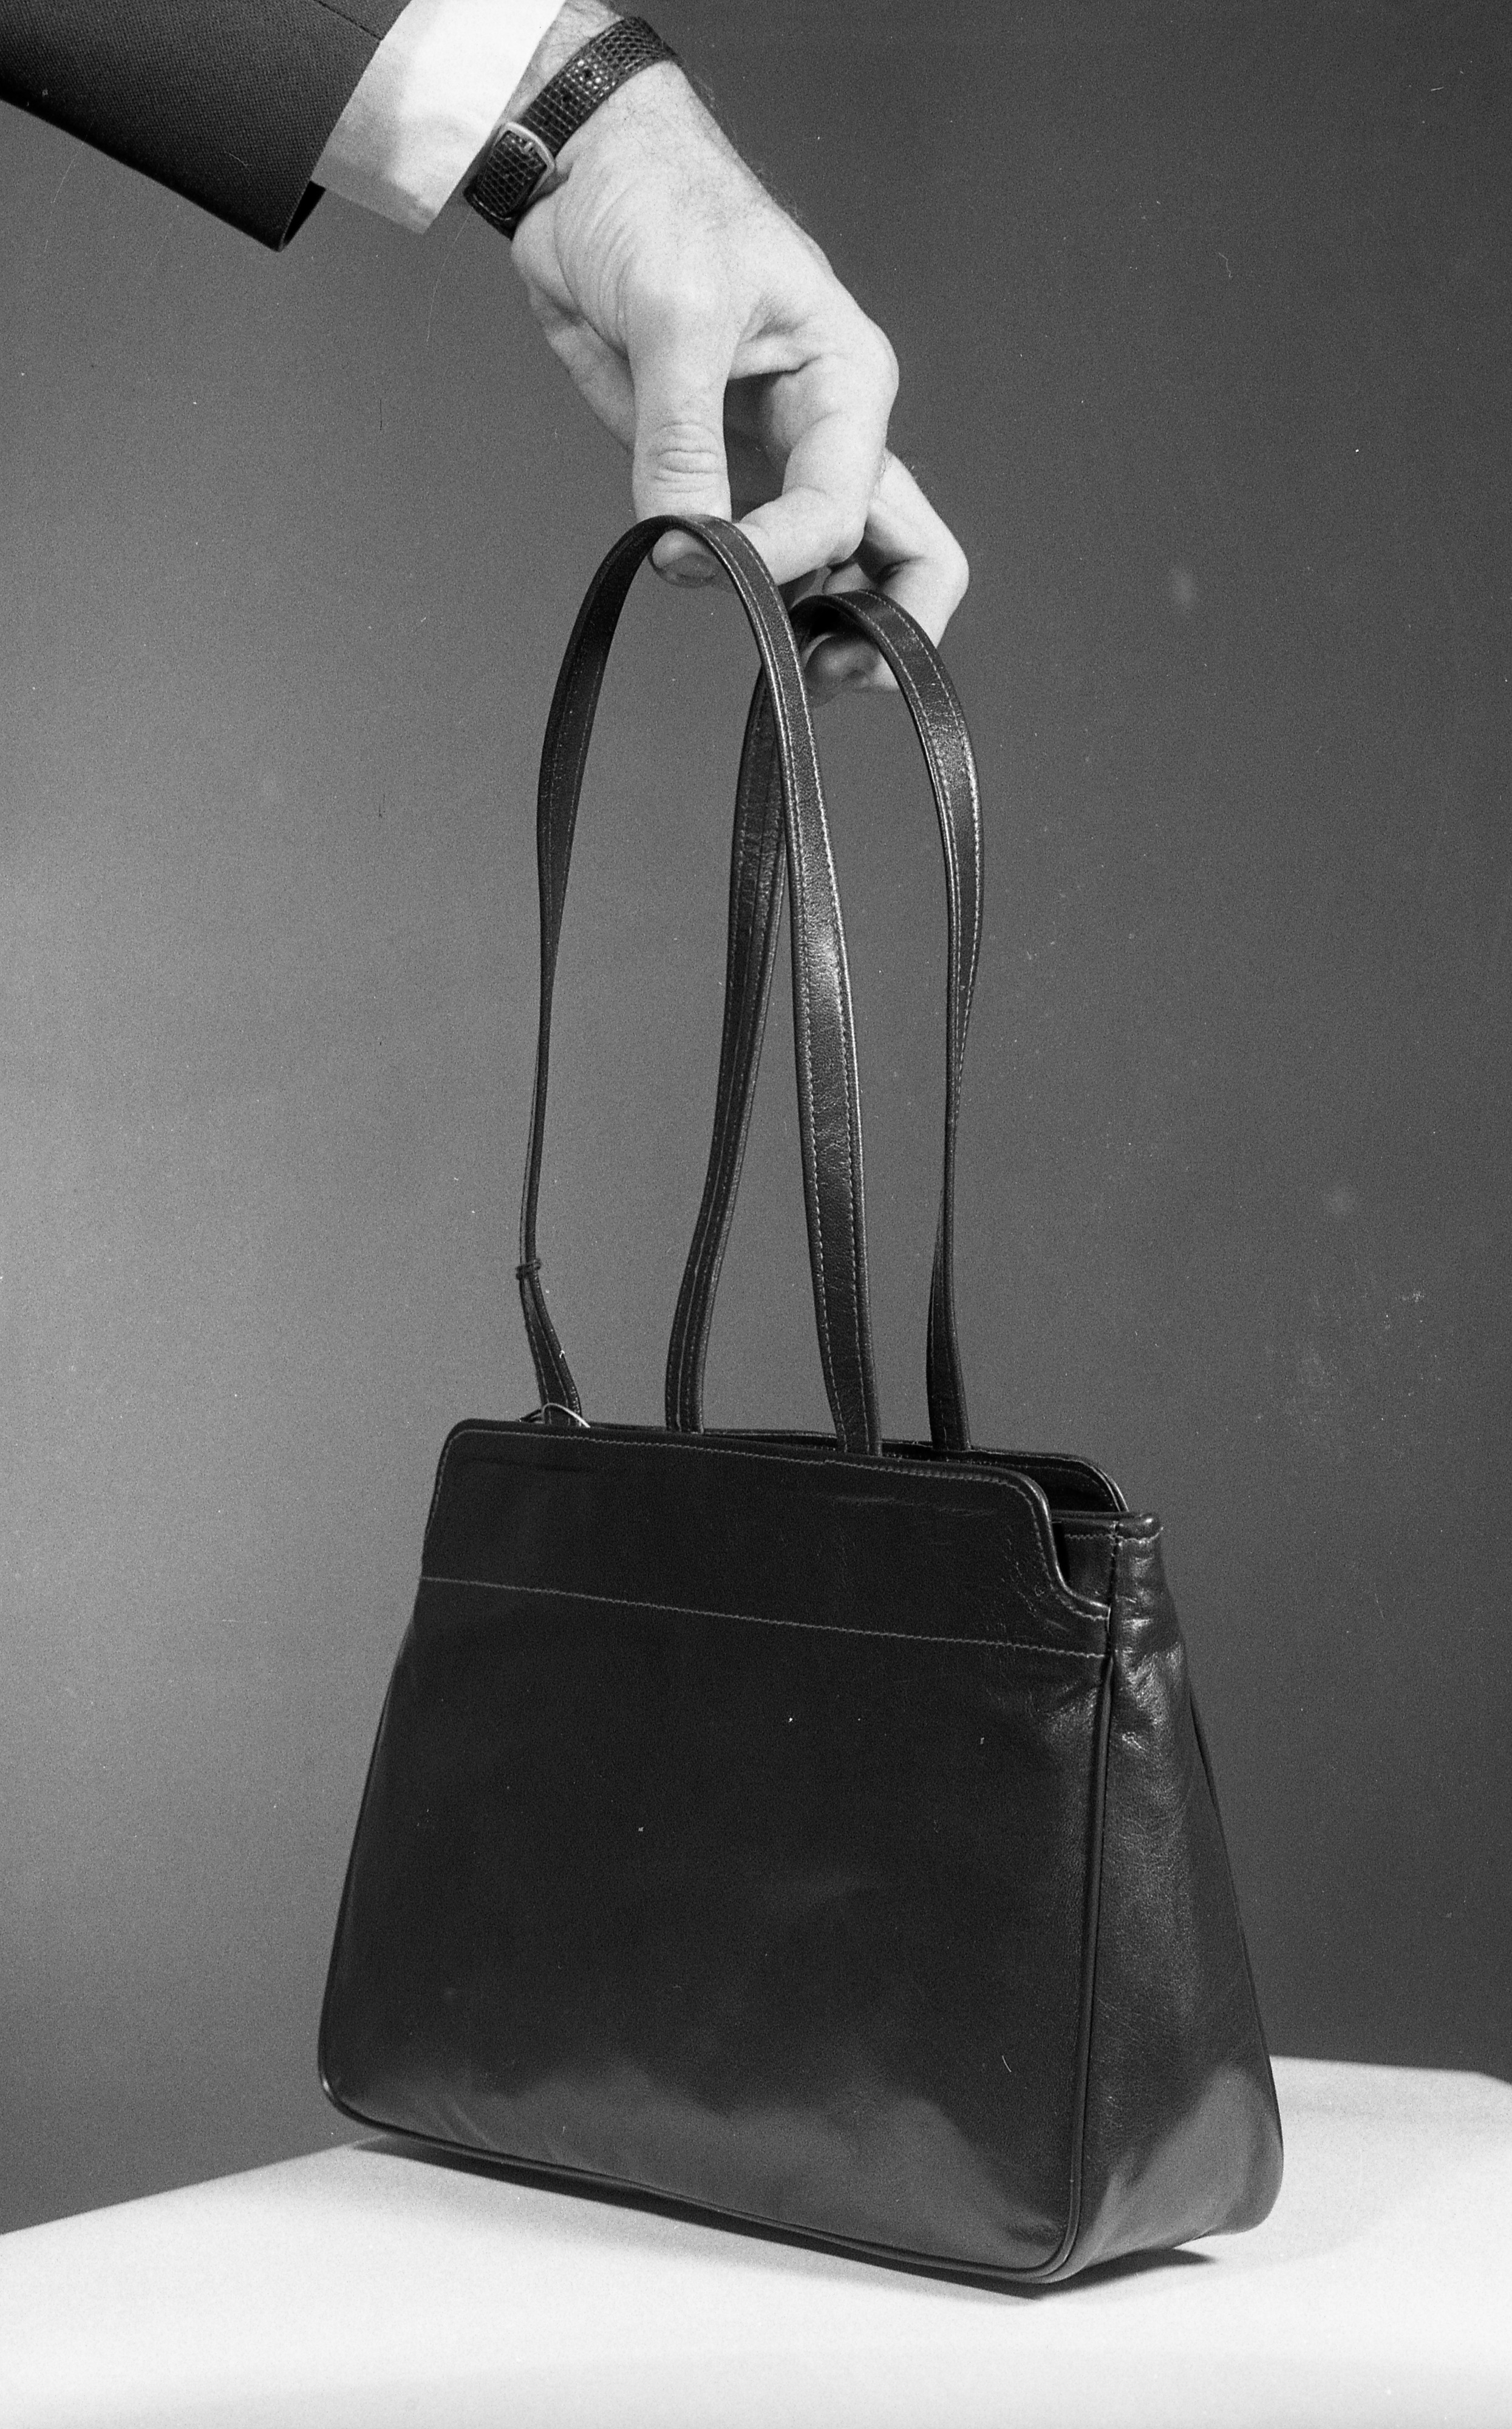 Ann Arbor Police Display Purse Like One Owned by Murder Victim Nancy Faber, November 1983 image